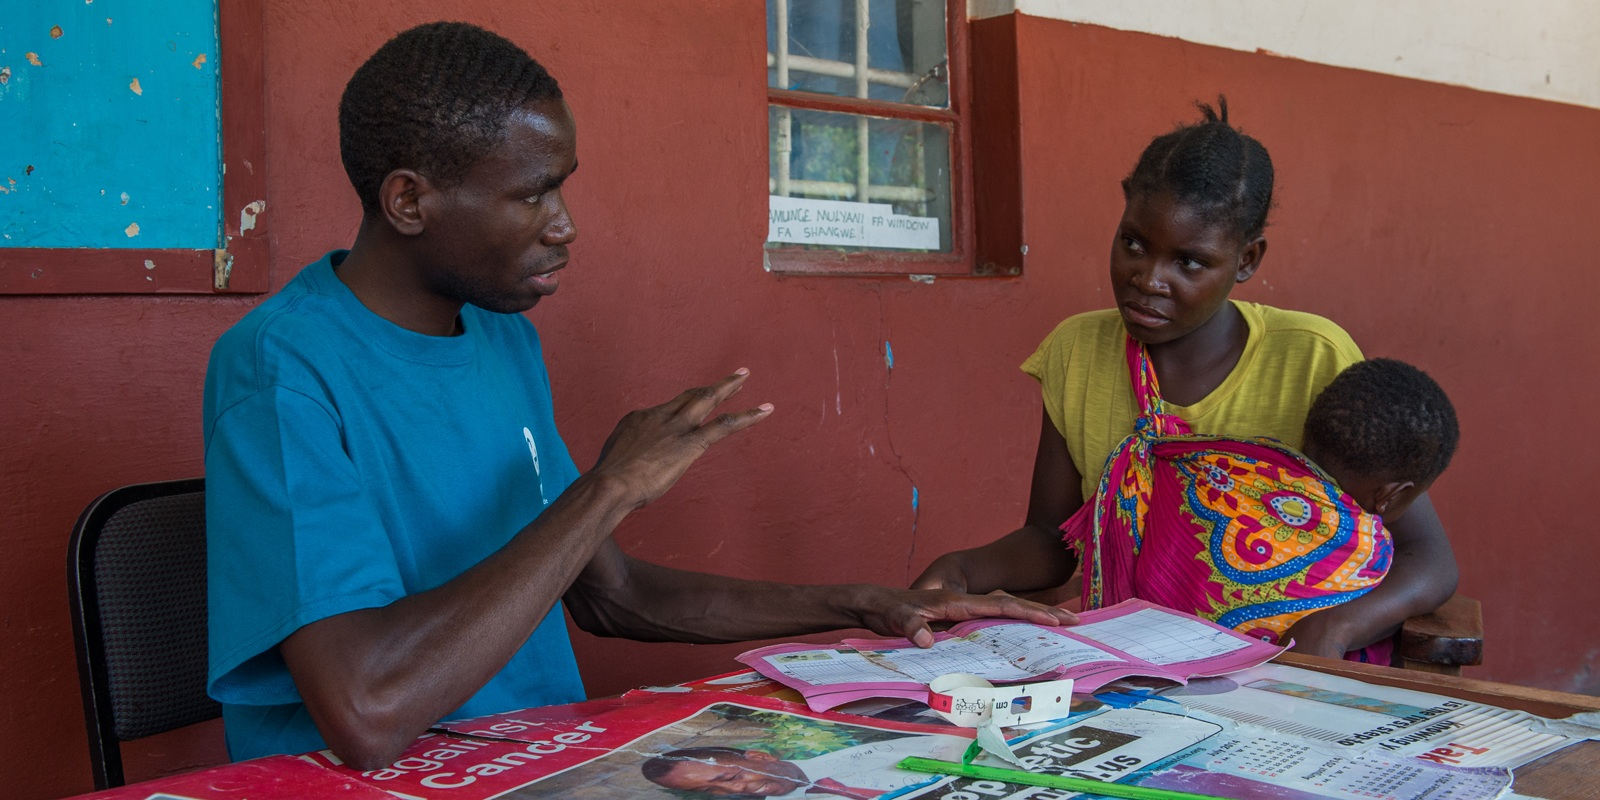 CMMB program coordinator Mwauluka speaking with a mother and her child in Mwandi, Zambia.